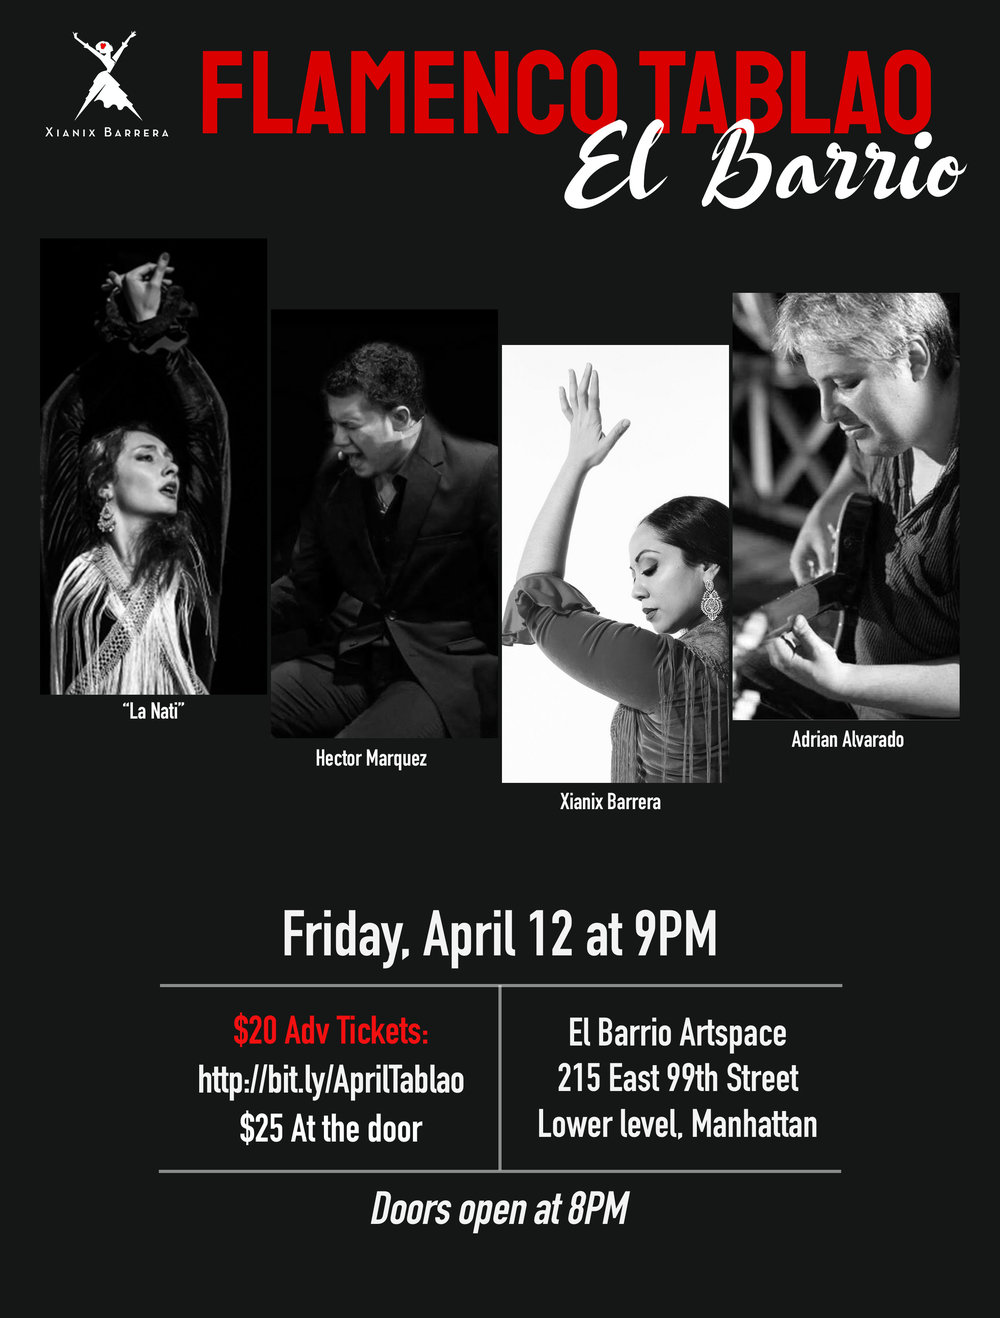 Fri. April 12th - 9pmMONTHLY FLAMENCO TABLAO SHOW - EVERY SECOND FRIDAY OF THE MONTH,IN THE HEART OF SPANISH HARLEM